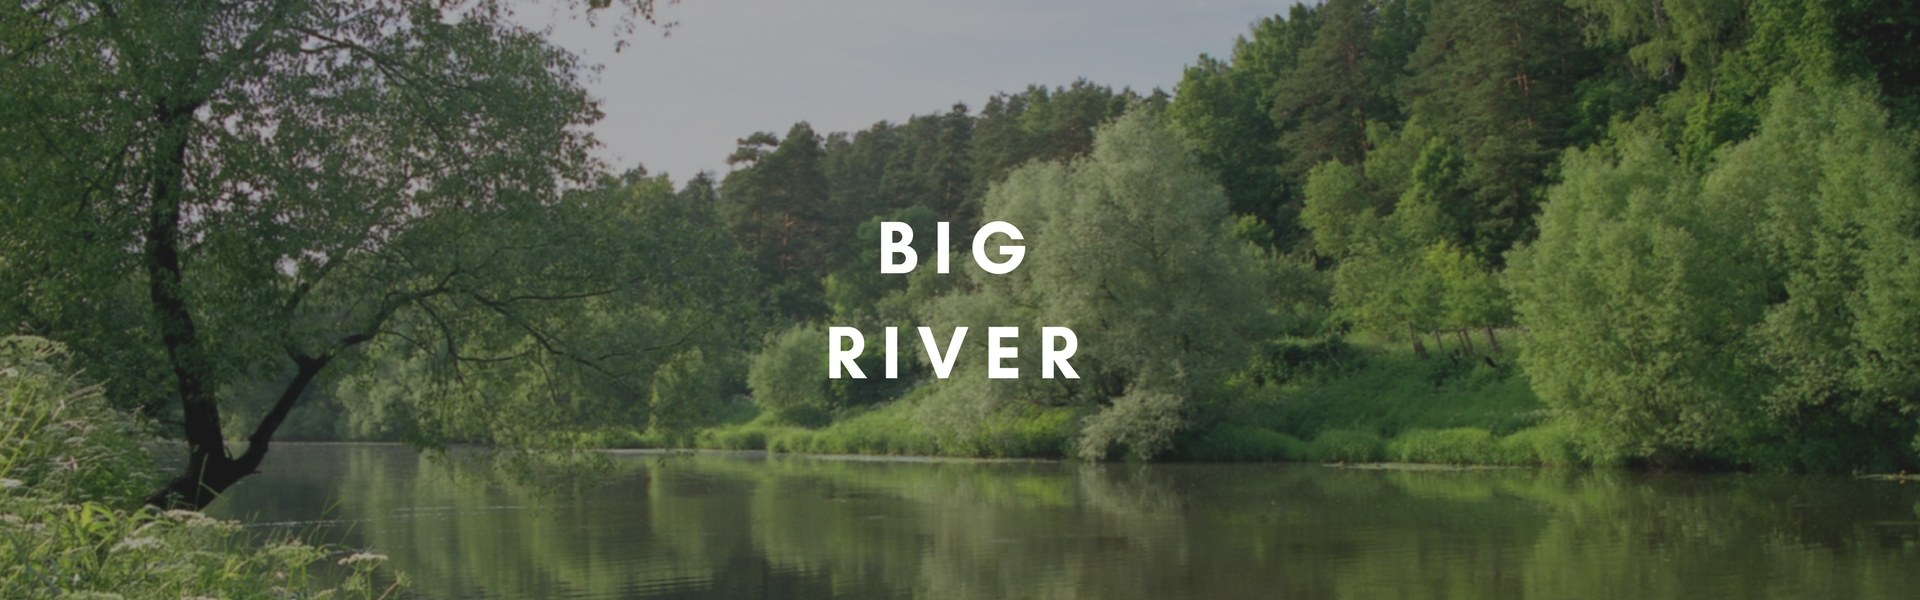 Big River at Shakespeare